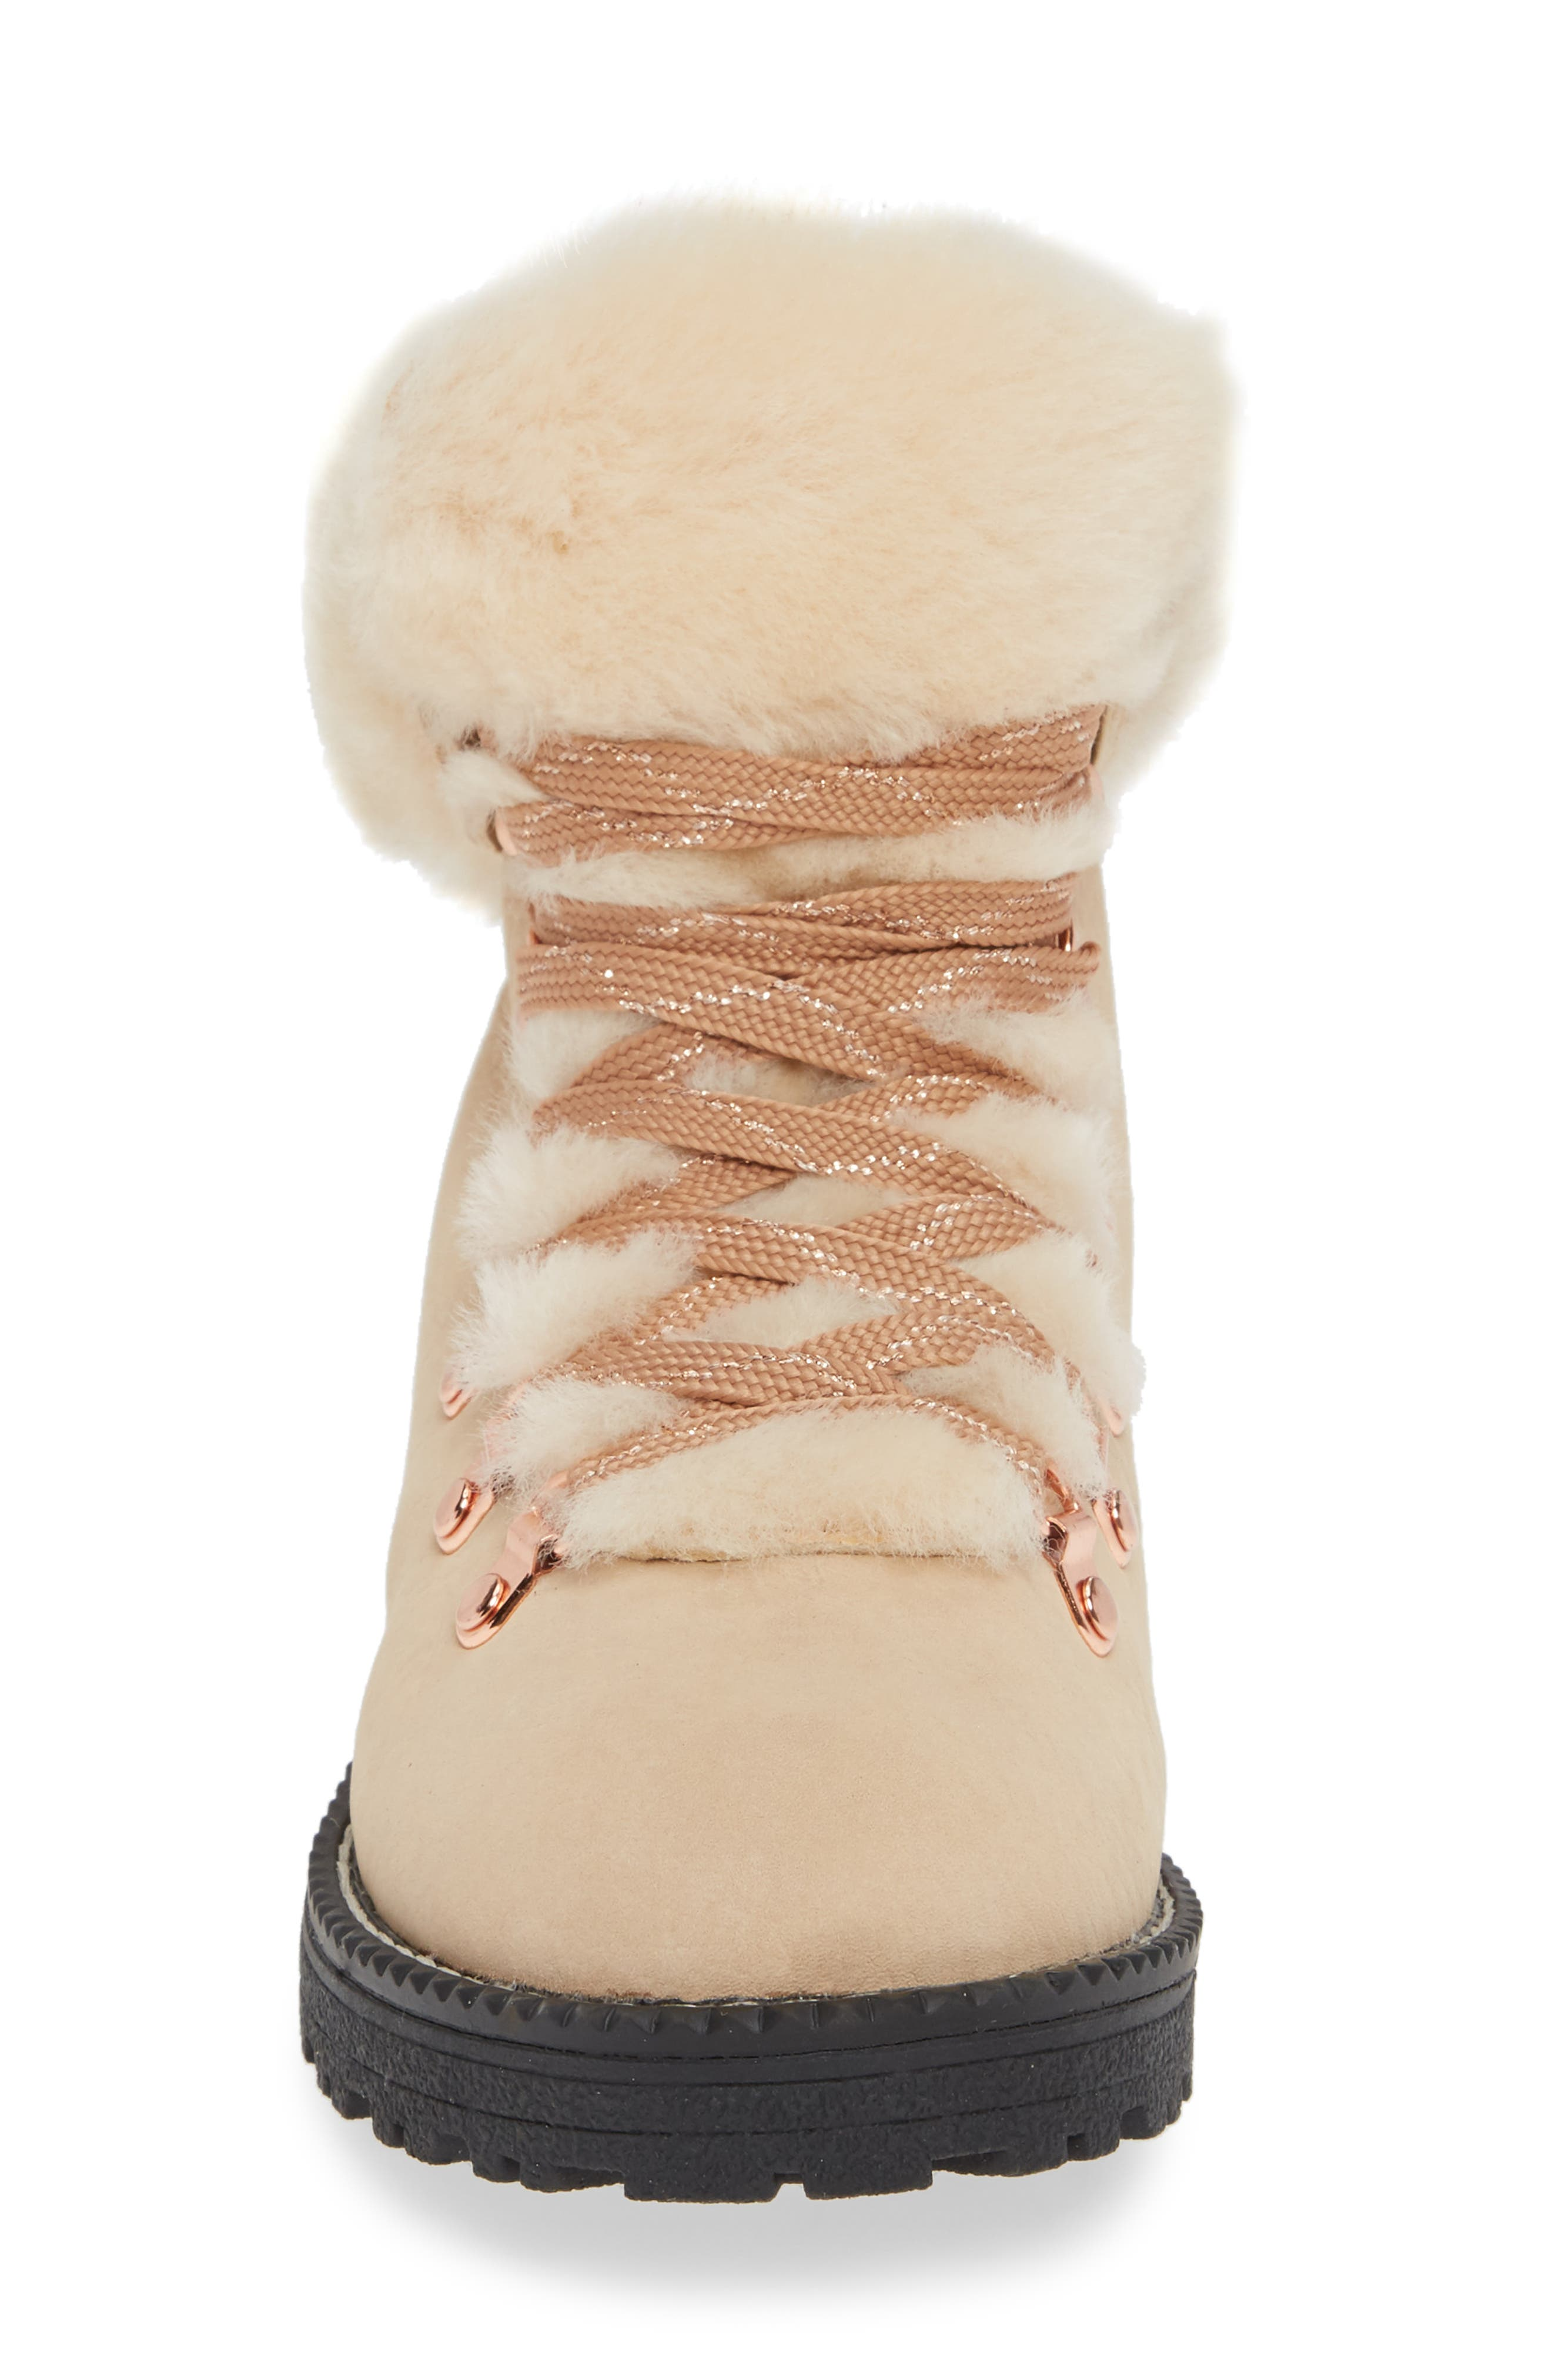 J.CREW, Nordic Genuine Shearling Cuff Winter Boot, Alternate thumbnail 4, color, 251